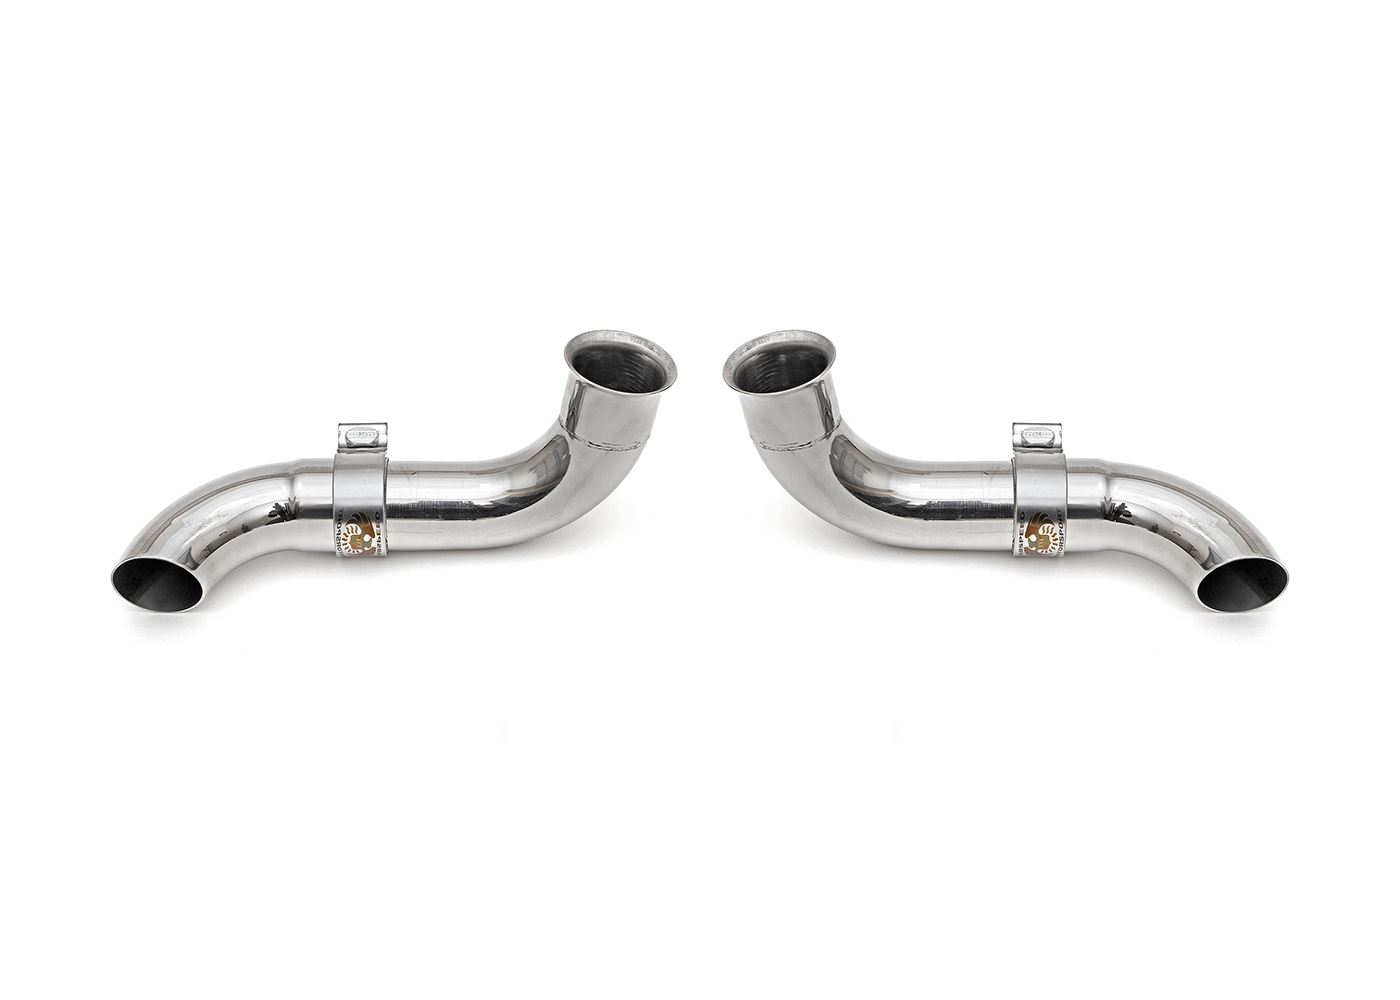 best exhaust   adjustable turndo fs por